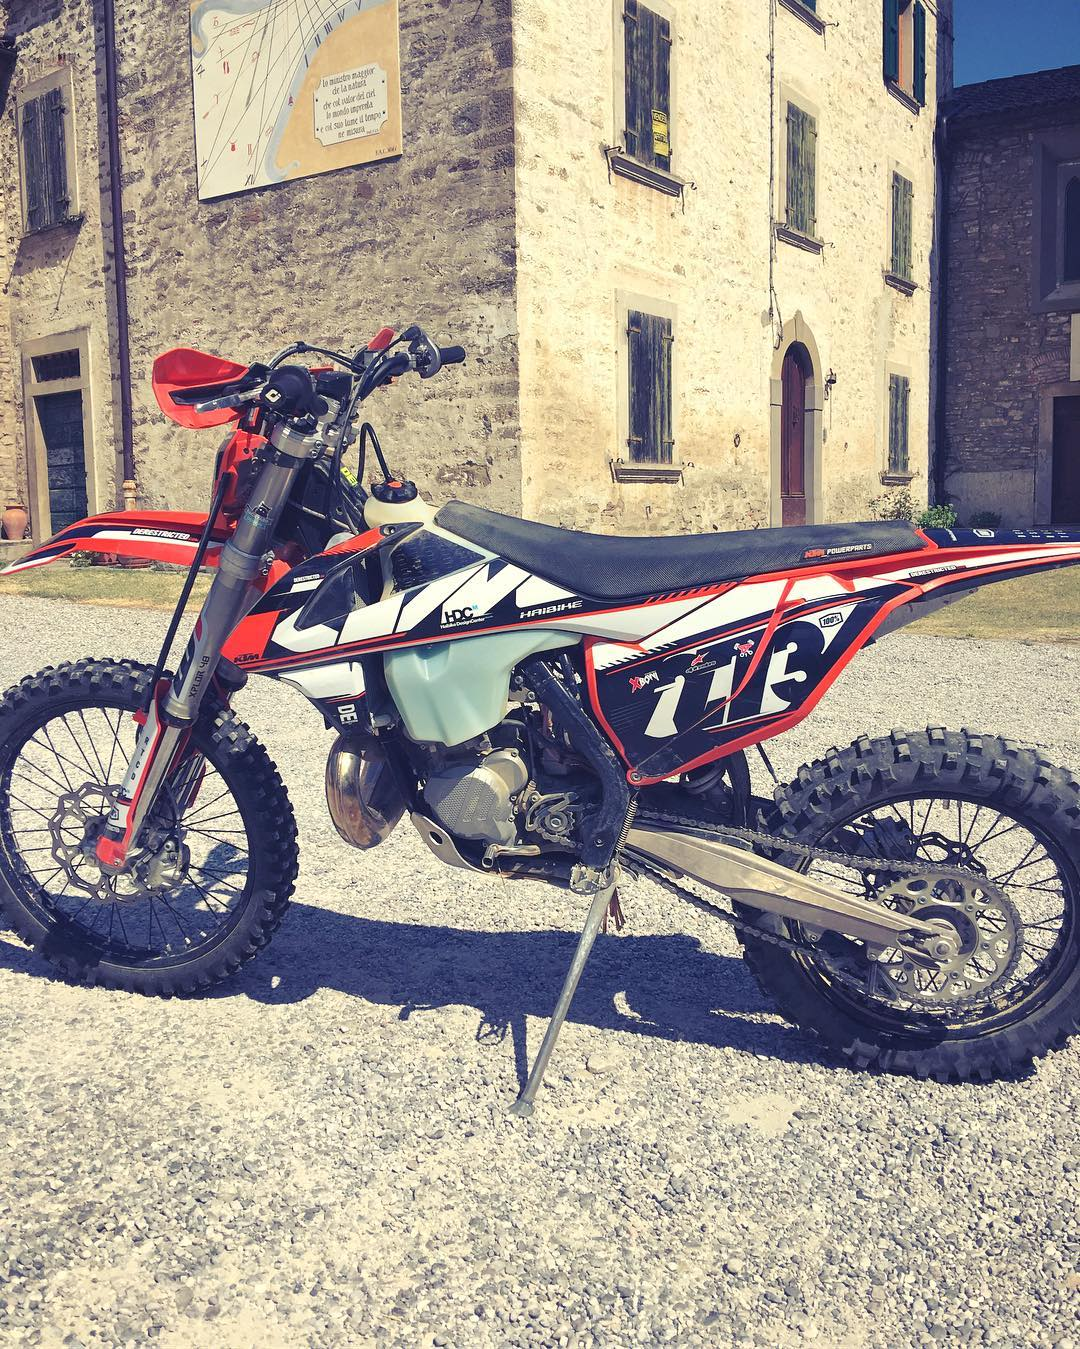 Video review coming very soon! #300exc #enduro #ktm #de_portfolio #badiadellavalle